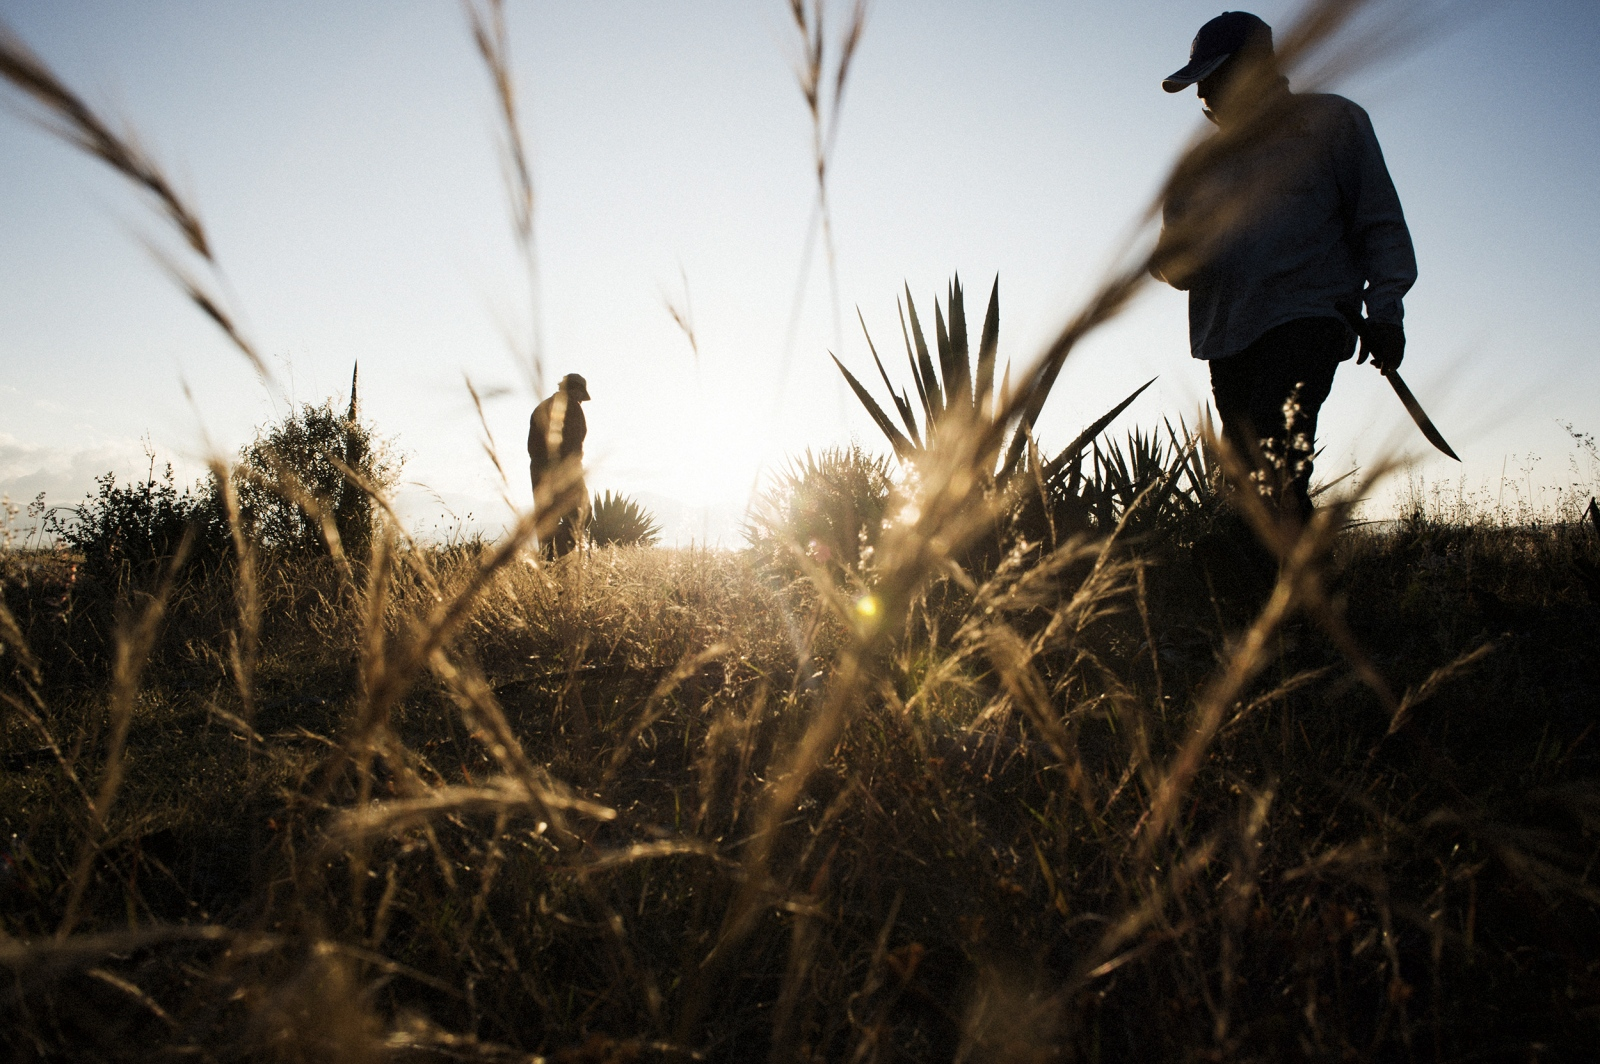 Workers use machetes to harvest agave in the fields near Santiago Matatlan, Oaxaca, Mexico. Matatlan is one of the main mezcal producing regions in Oaxaca, and therefore the world. The majority of the mezcal is still produced artisanally by families who have been producing mezcal in the same traditional manner for generations.